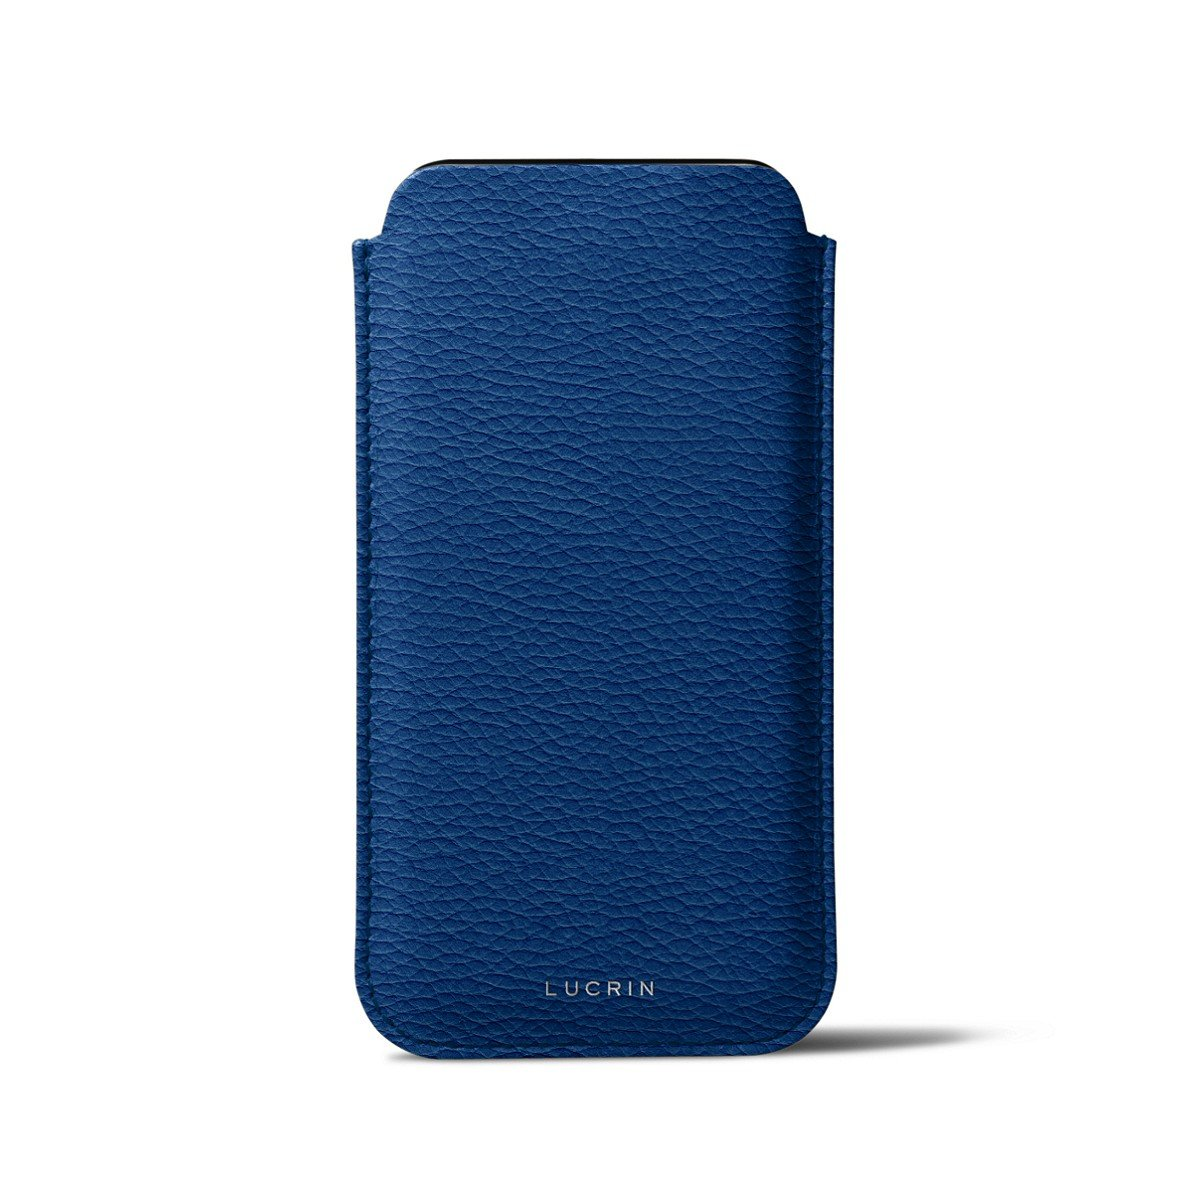 Lucrin - Classic Case for iPhone X - Royal Blue - Granulated Leather by Lucrin (Image #3)